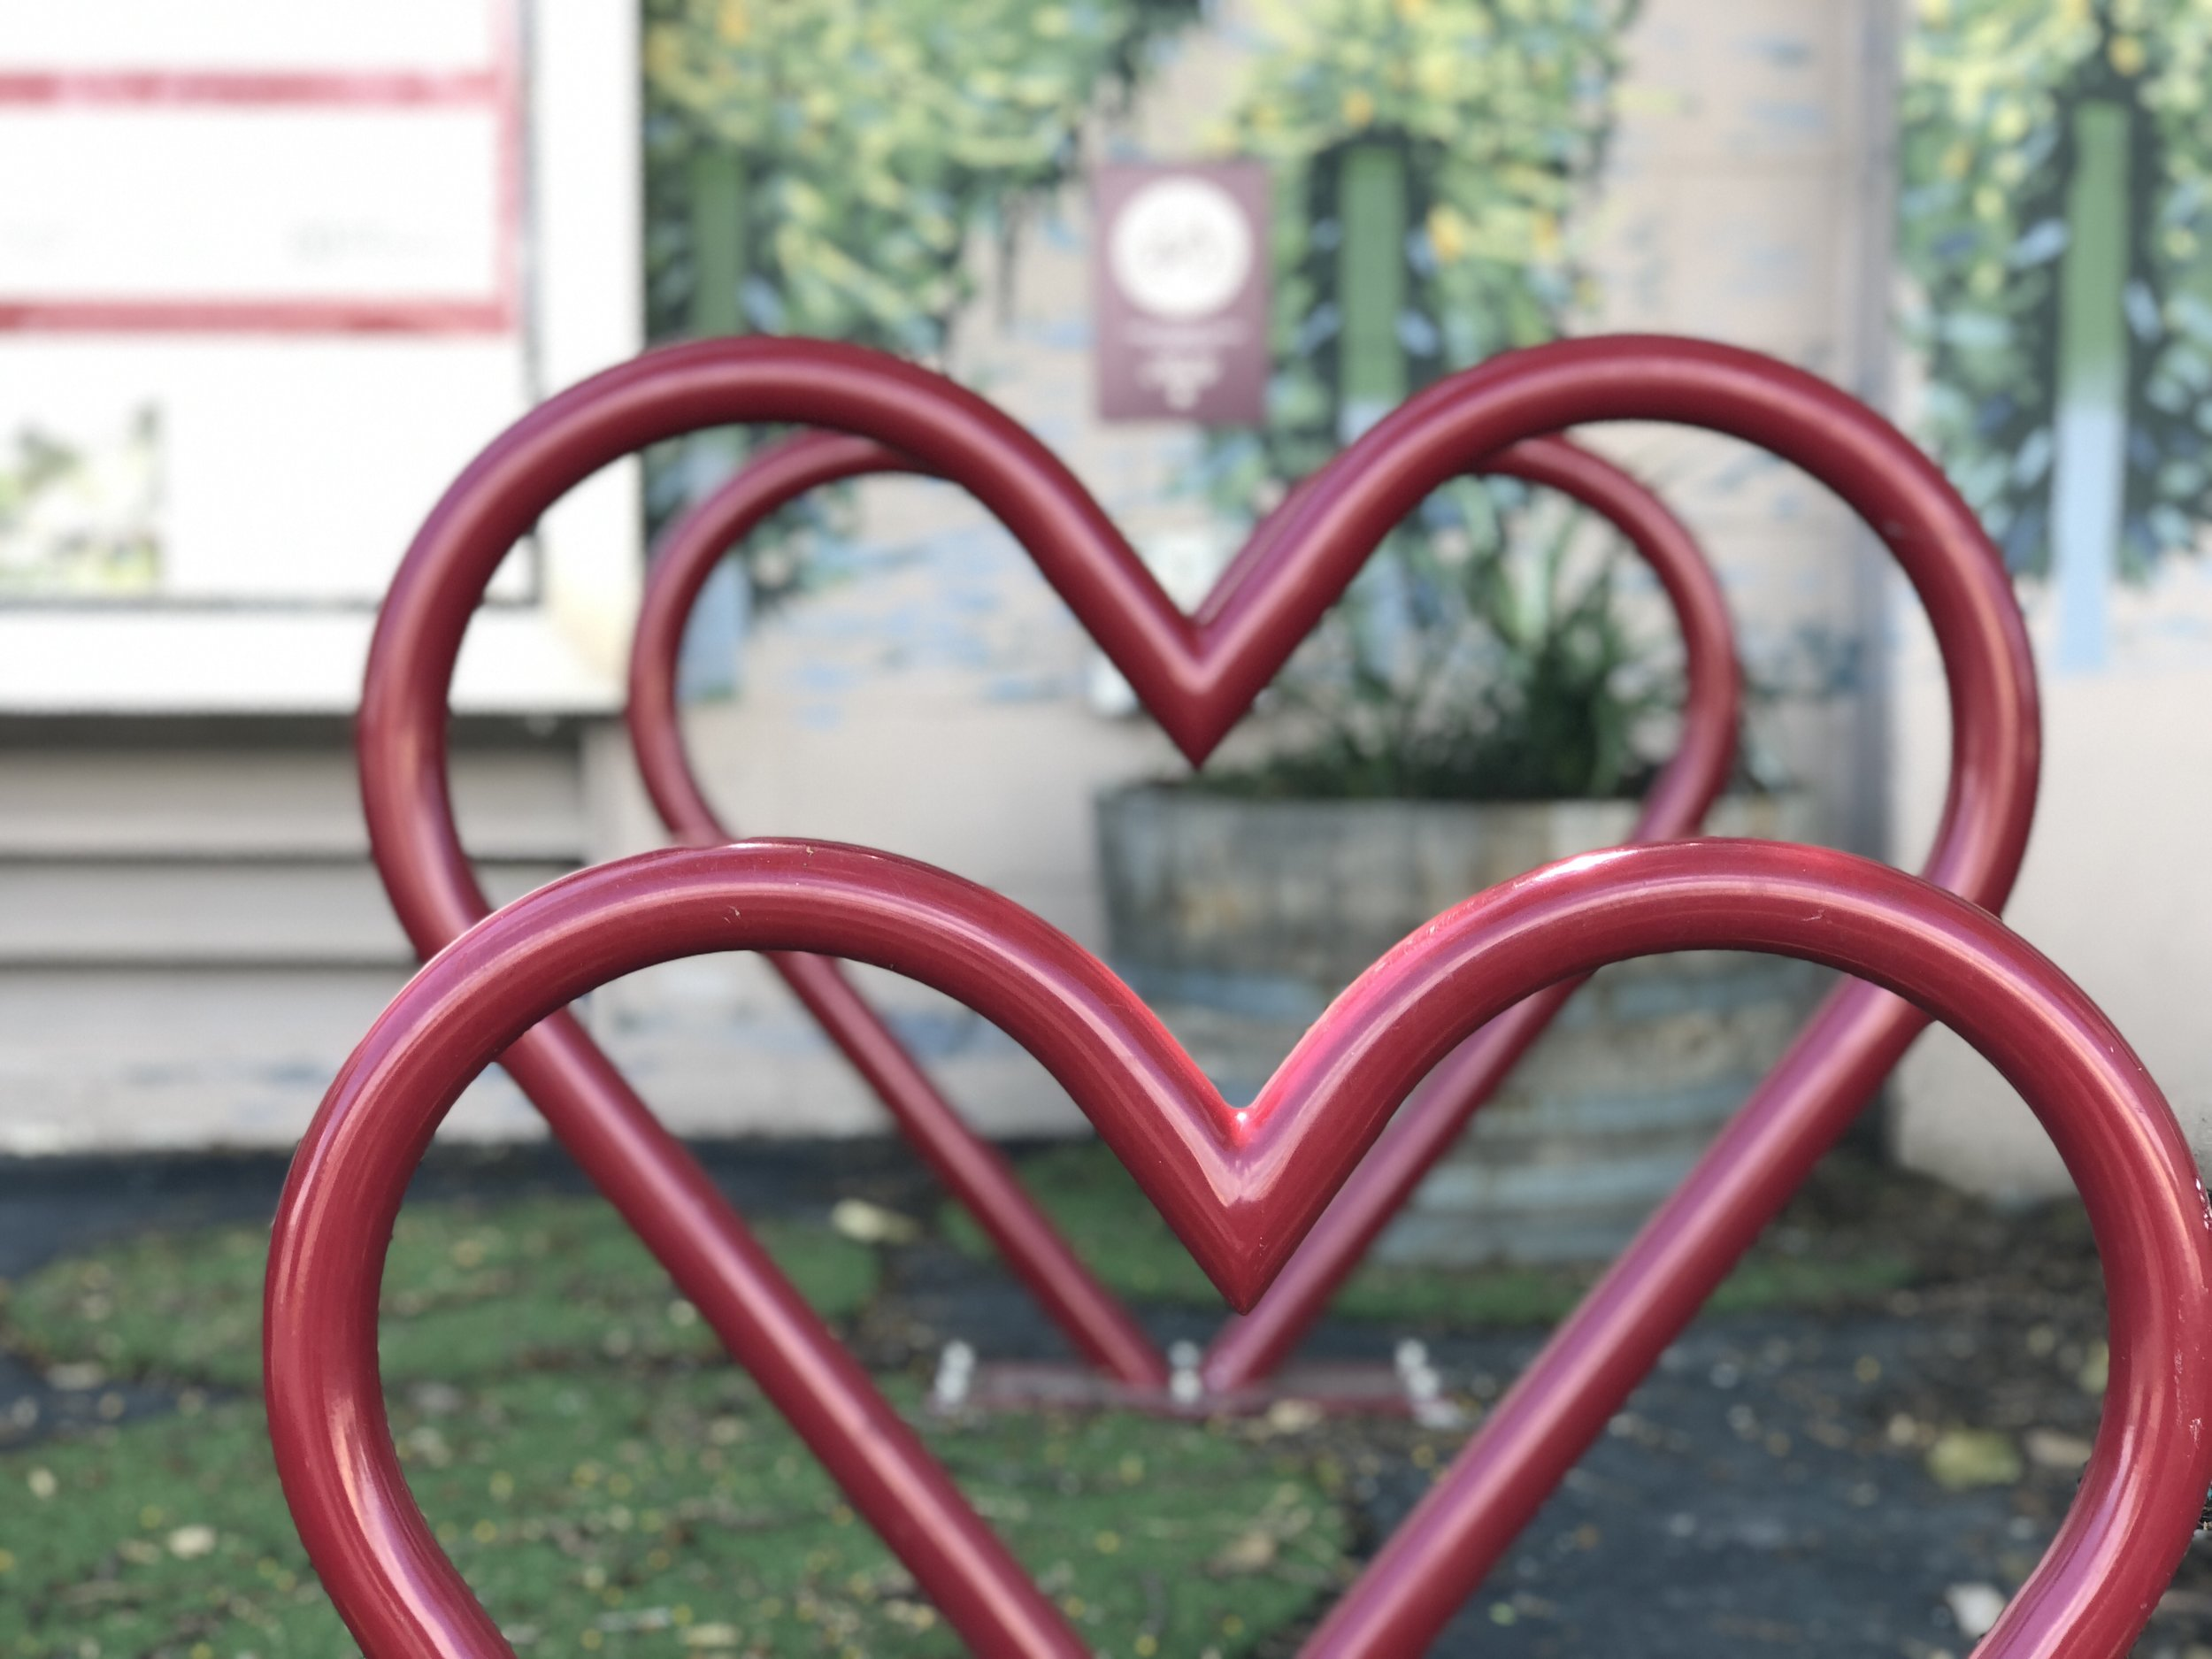 The strategy aims to return Renwick as a township for people, not just cars.